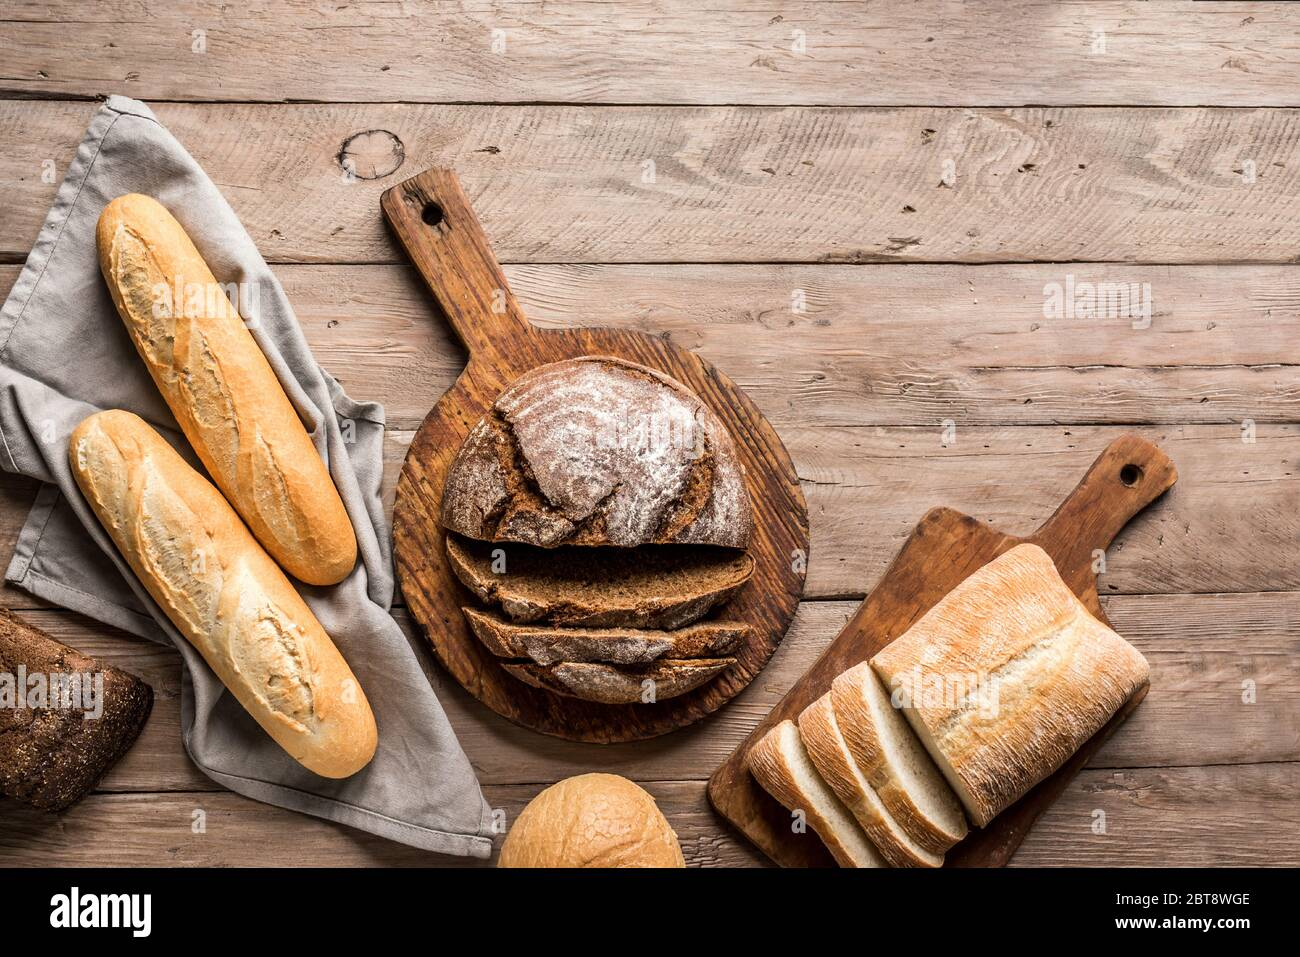 Fresh Bread on wooden background, top view, copy space. Homemade fresh baked various loafs of wheat and rye bread flat lay. Stock Photo